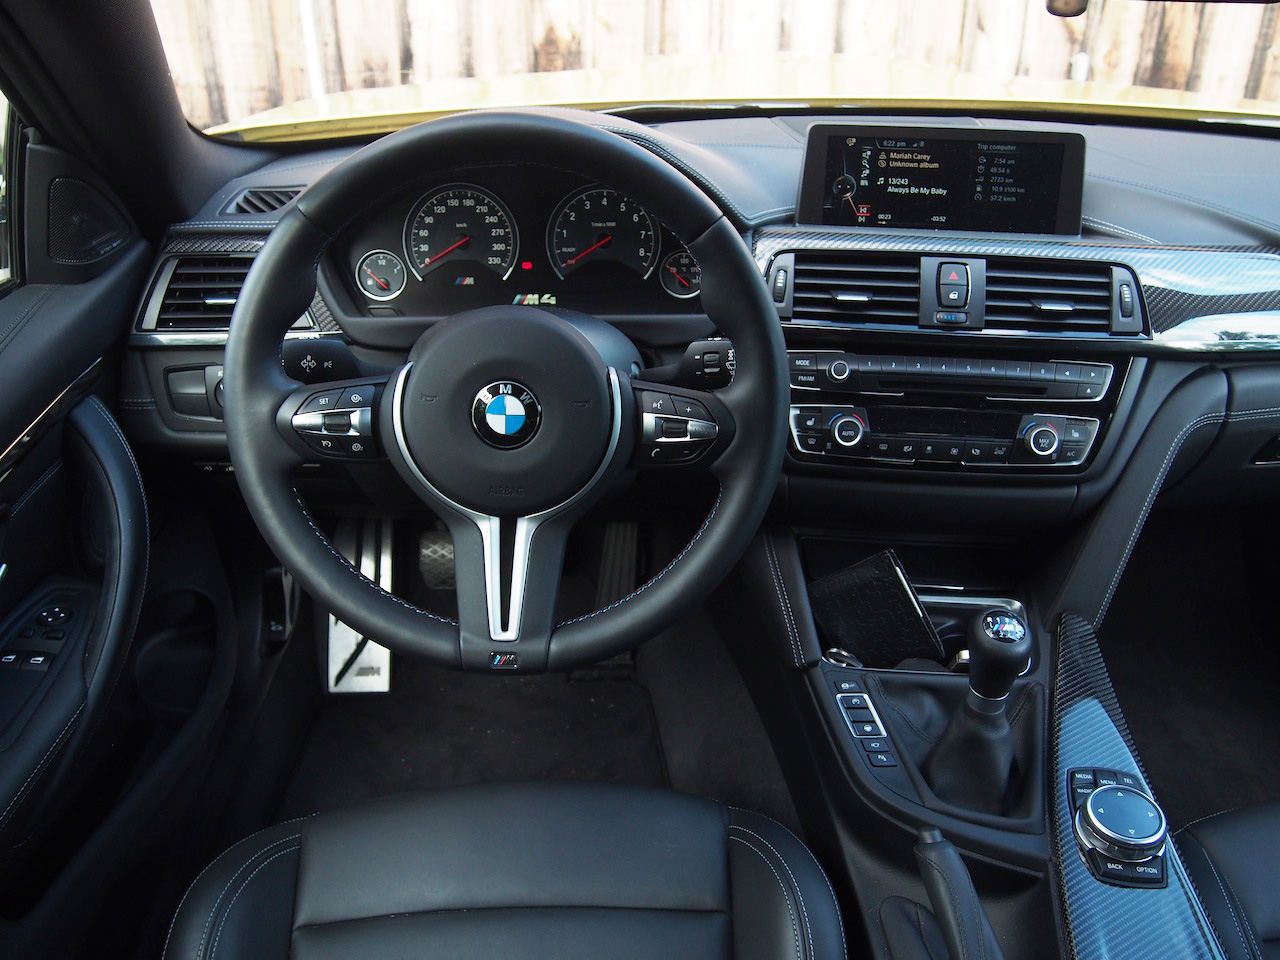 2015 bmw m4 coupe interior images galleries with a bite. Black Bedroom Furniture Sets. Home Design Ideas